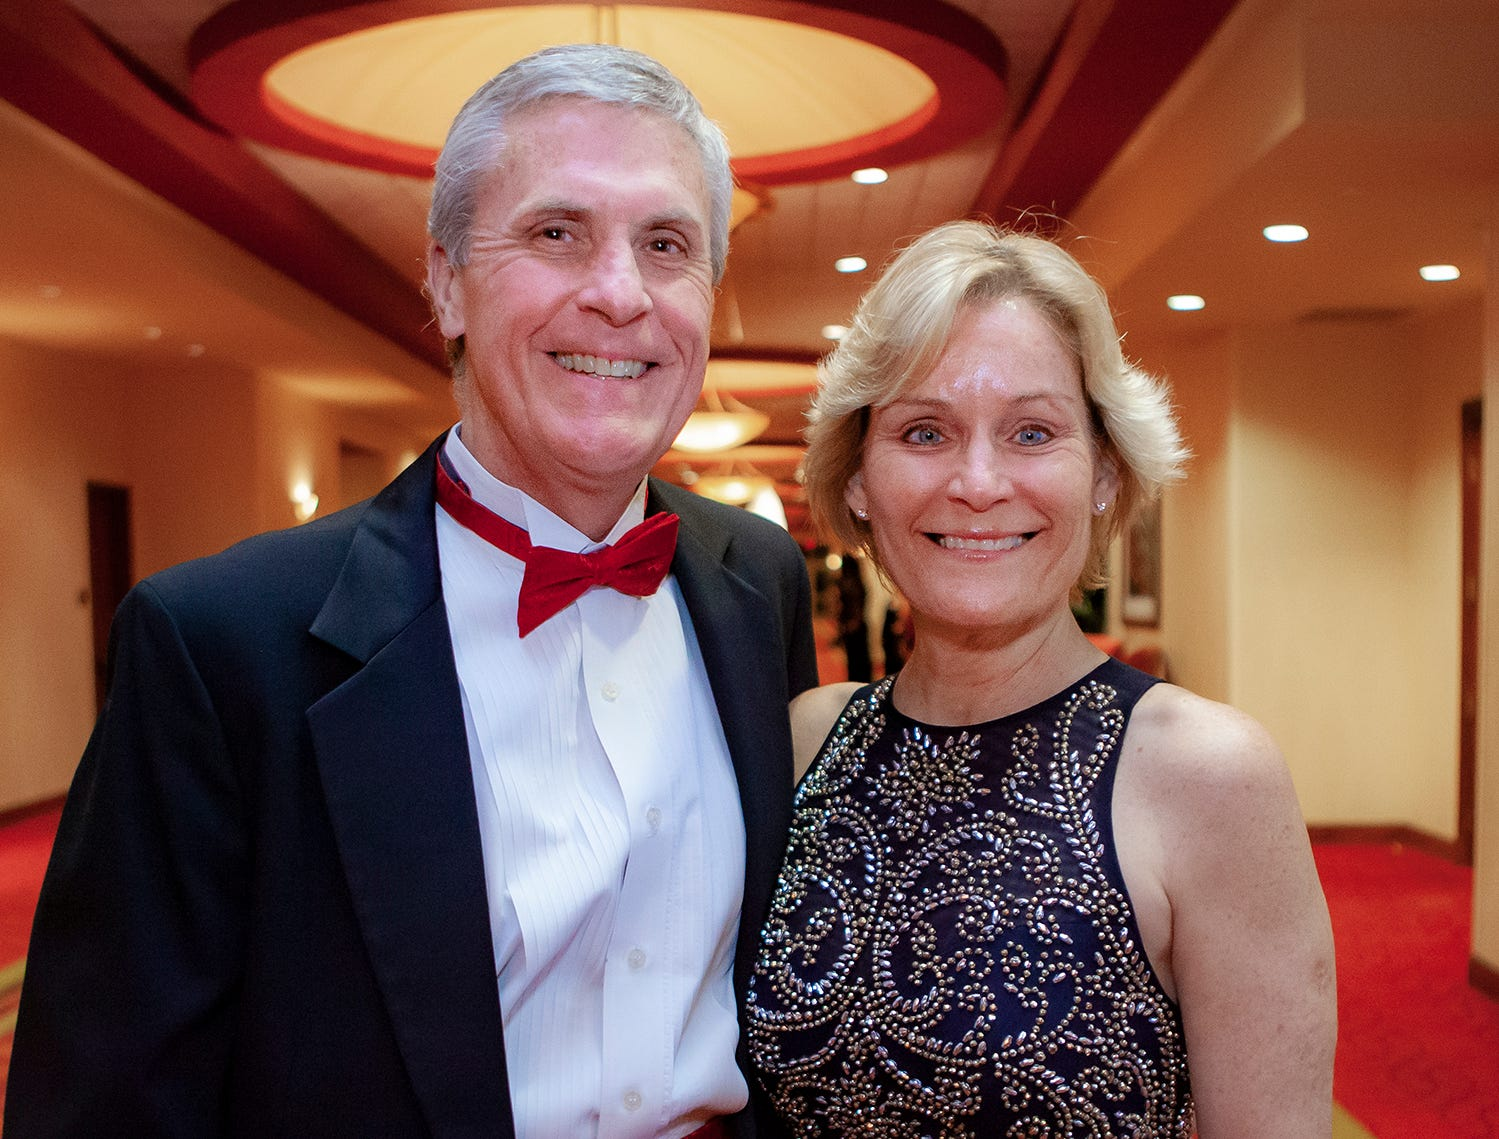 Mike and Beth Ussery at the 2019 Saint Thomas Rutherford Foundation Gala on Saturday, Jan. 19, 2019 at Embassy Suites Murfreesboro.